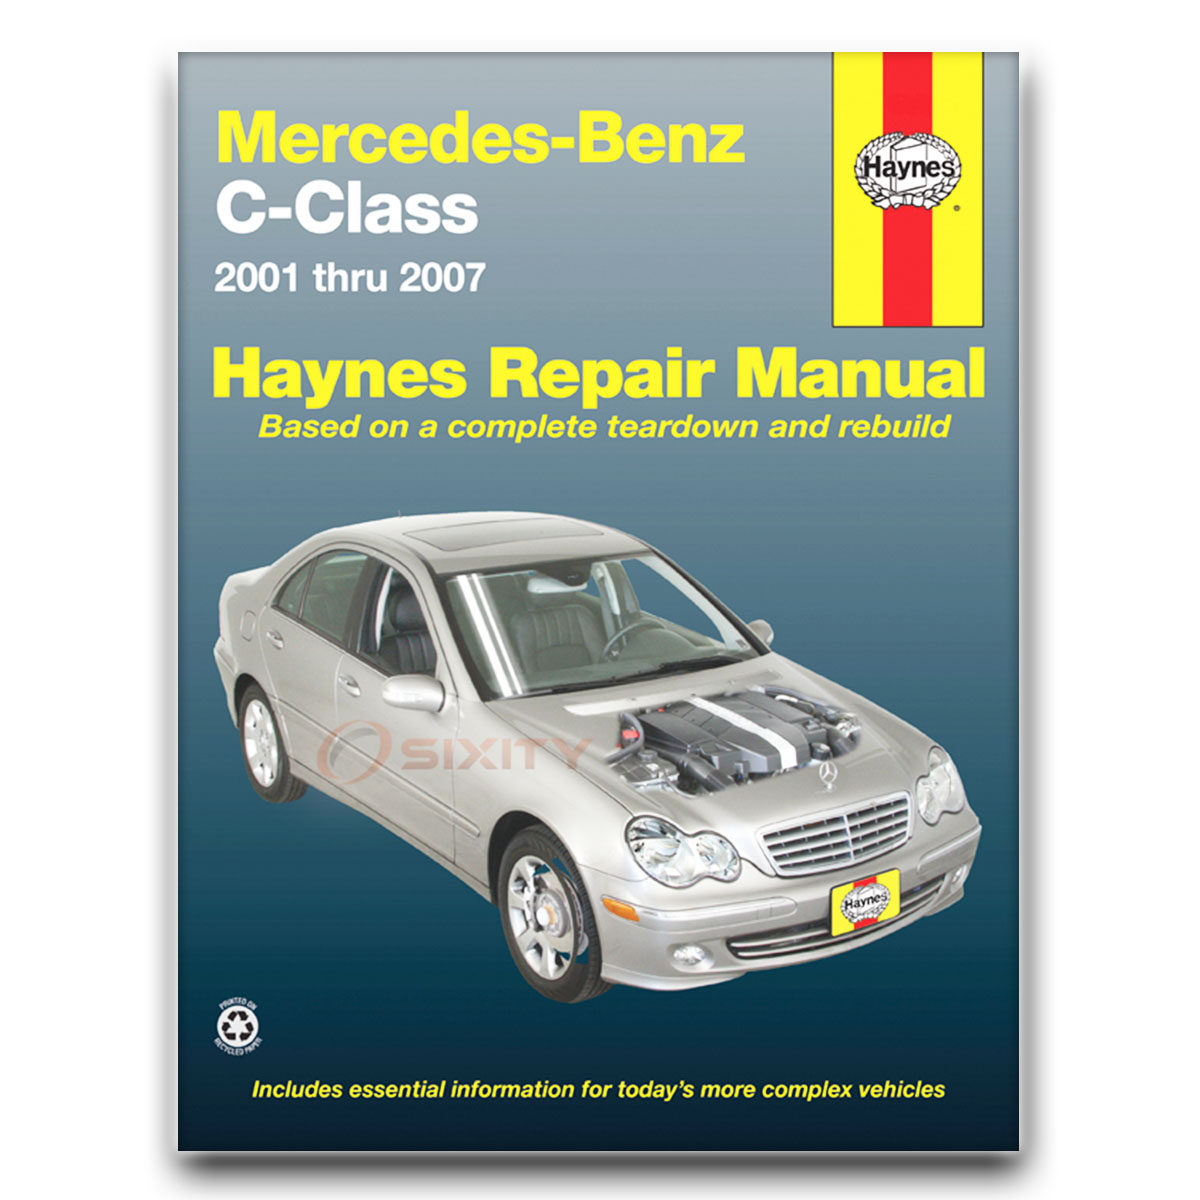 Haynes Repair Manual for Mercedes C230 Sport Kompressor Shop Service Garage  dr